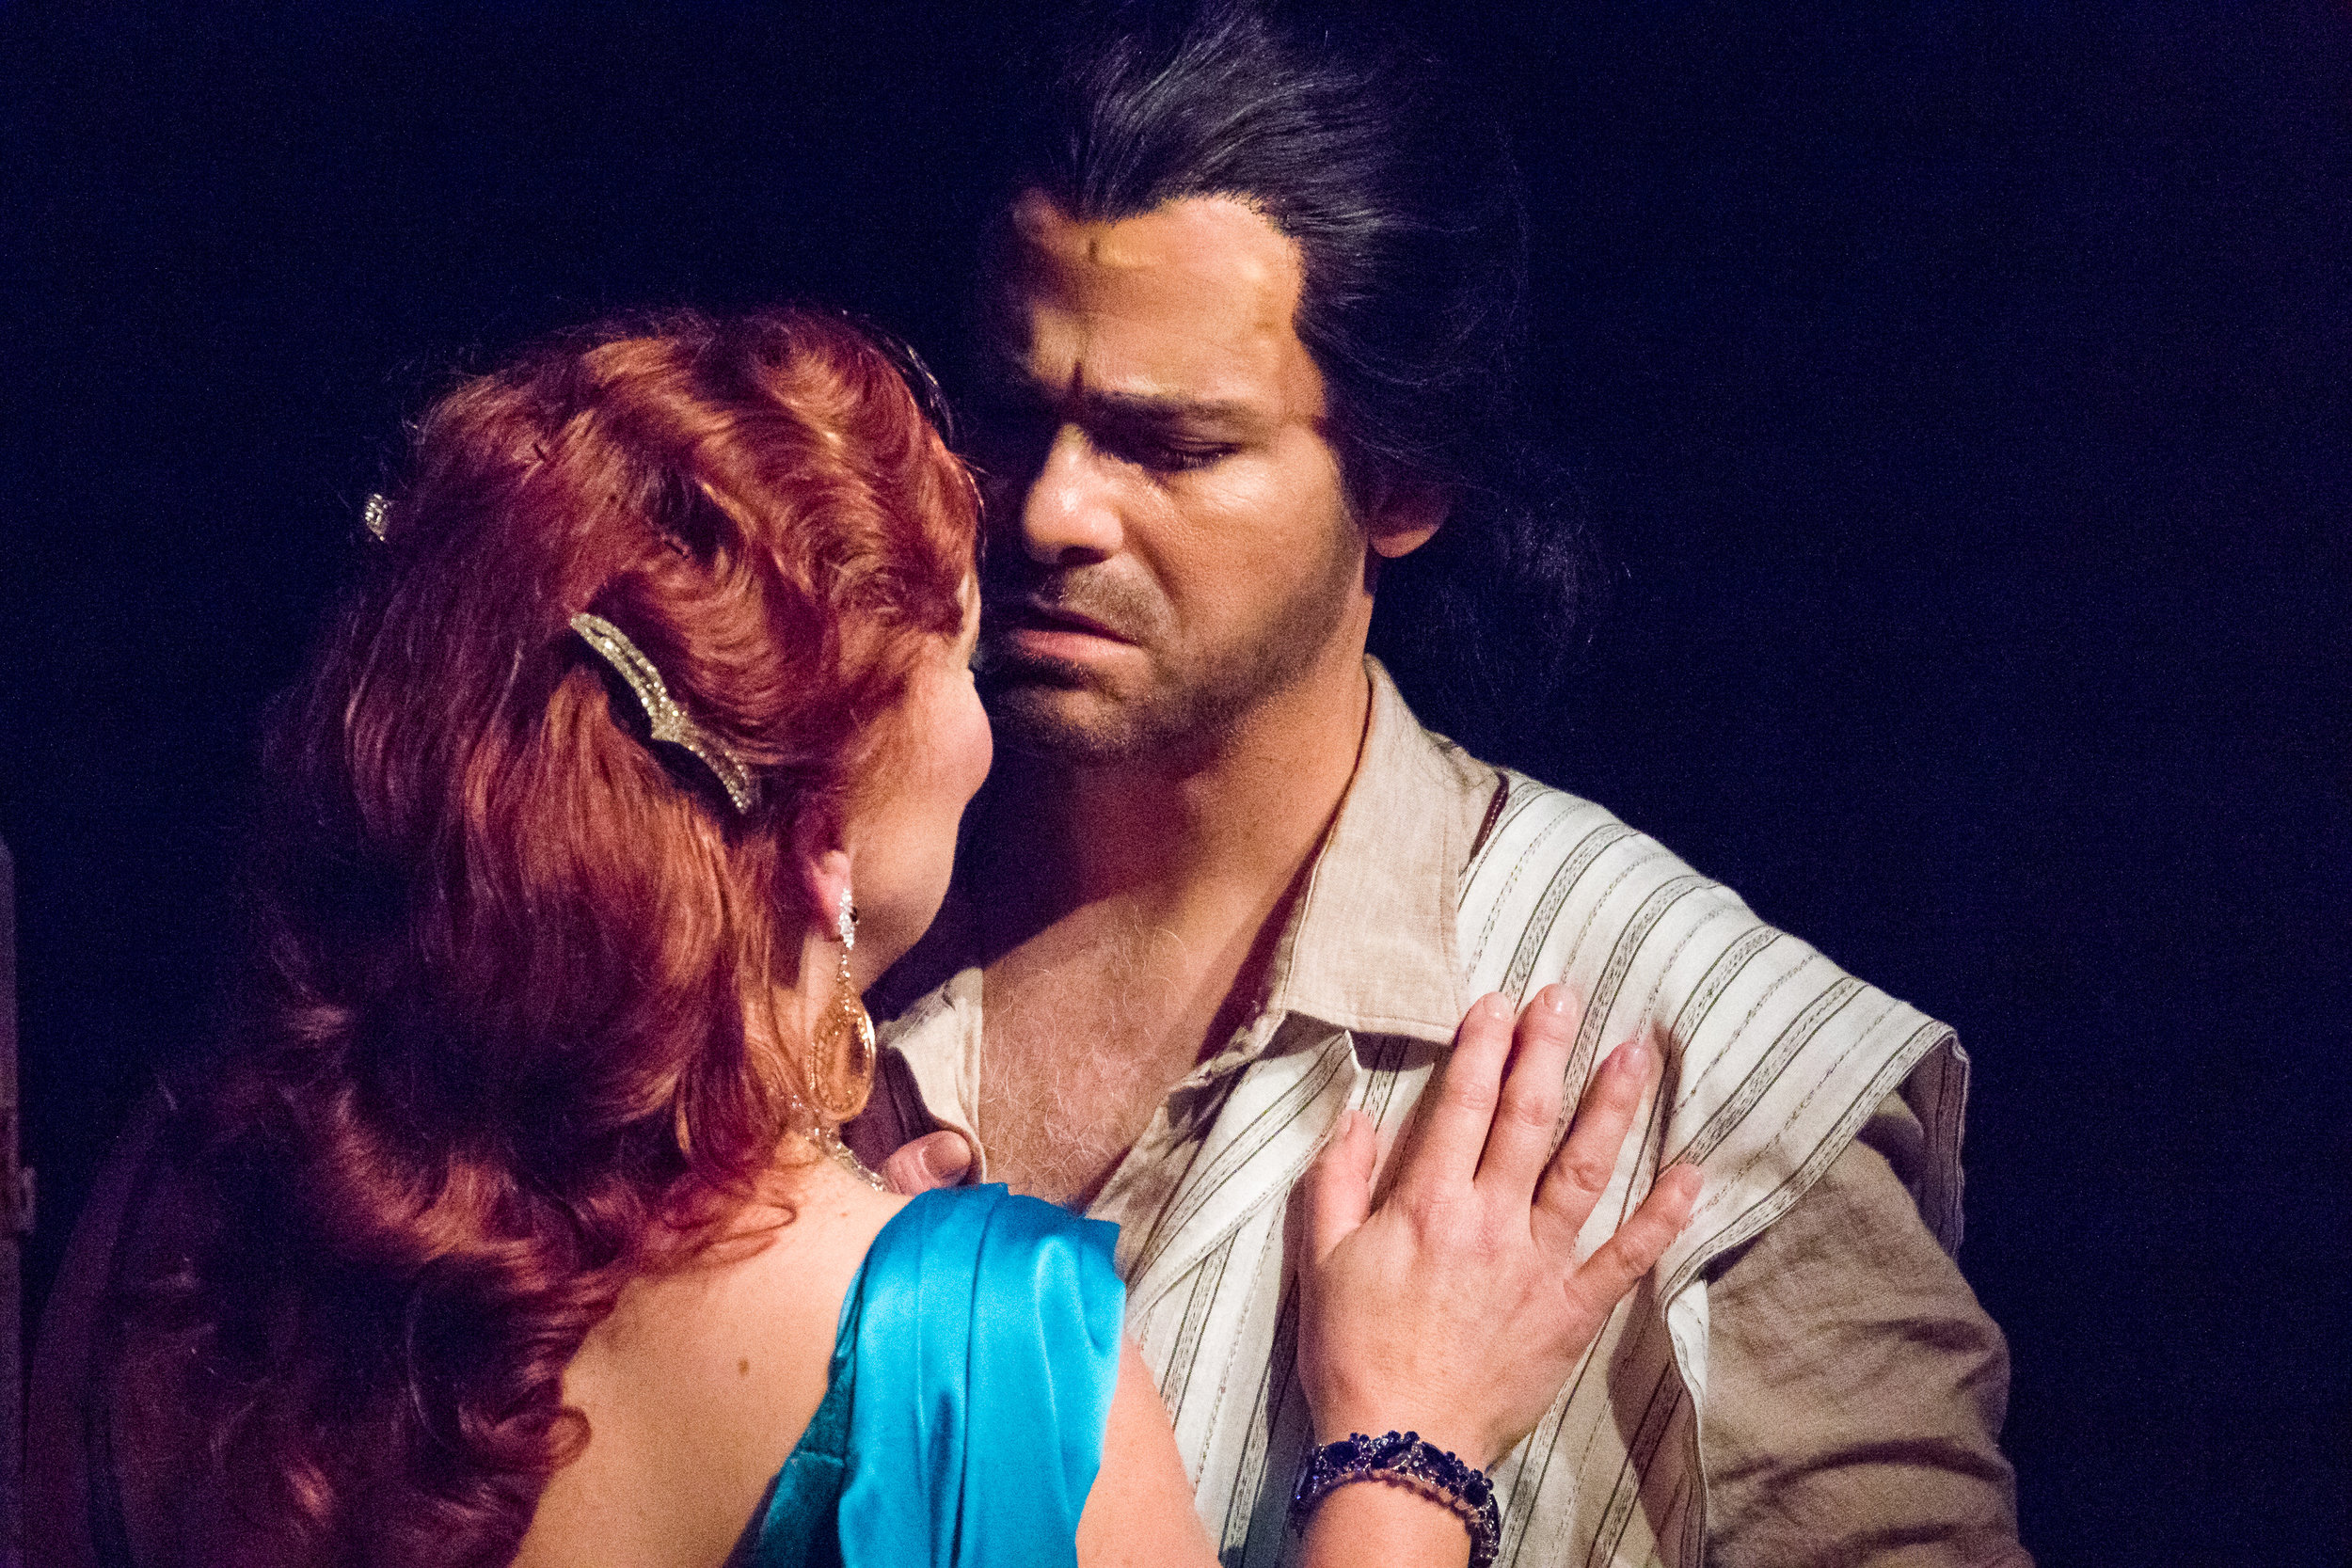 Delilah (Katharine Goeldner) and Samson (Derek Taylor). Photo by Ben Schill Photography; courtesy of Virginia Opera.